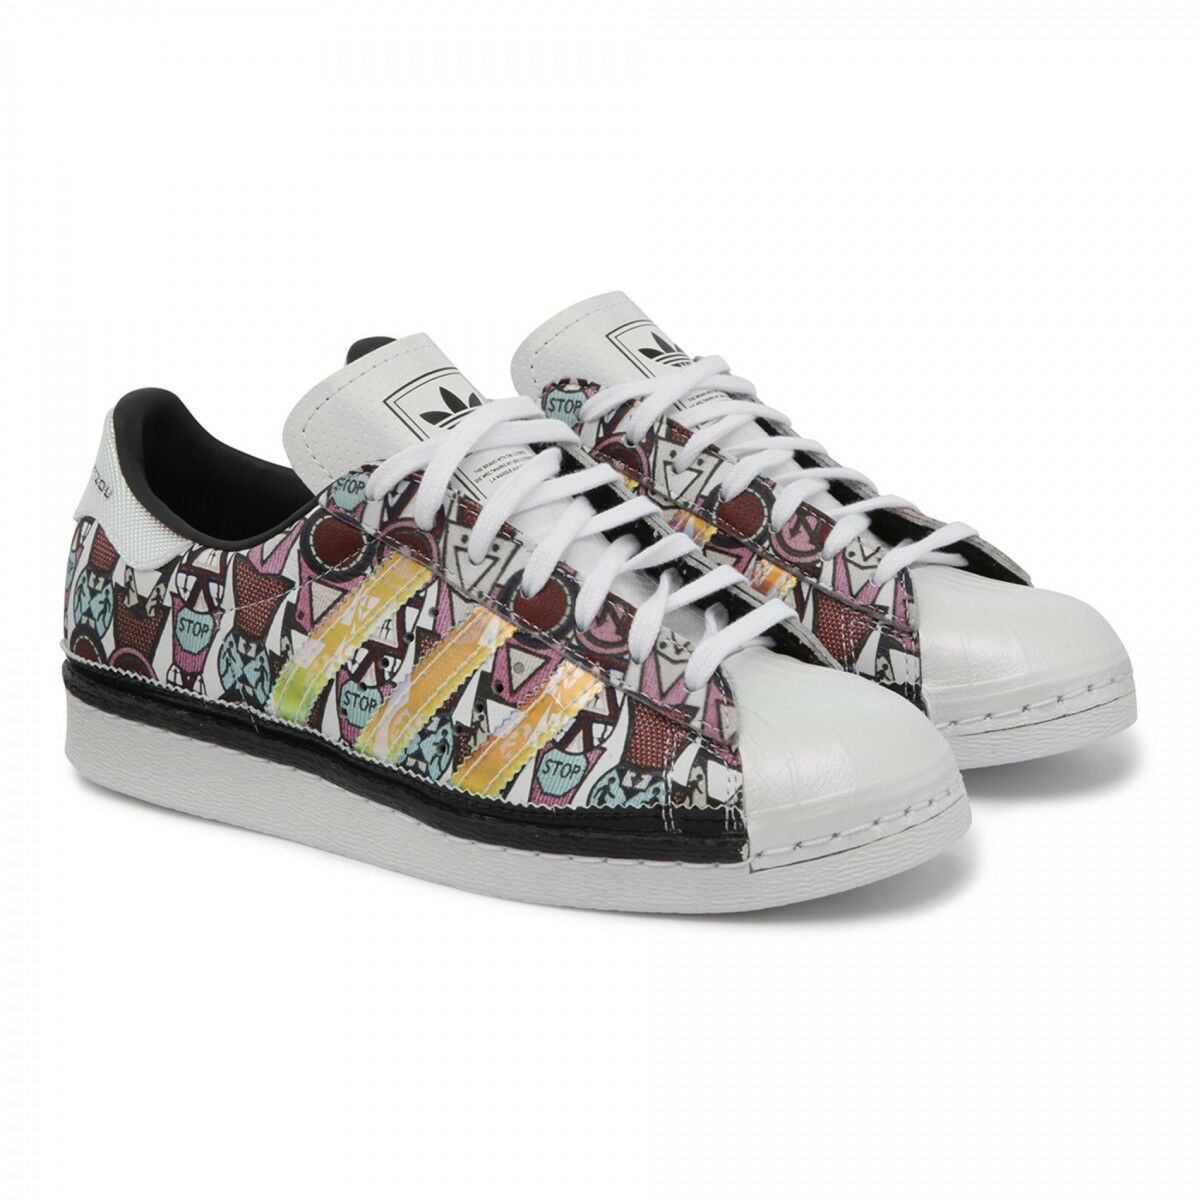 ADIDAS 80's ORIGINALS MARY KATRANTZOU SUPERSTAR 80's ADIDAS WOMEN'S SHOES SIZE US 10 AF5272 ac6da8